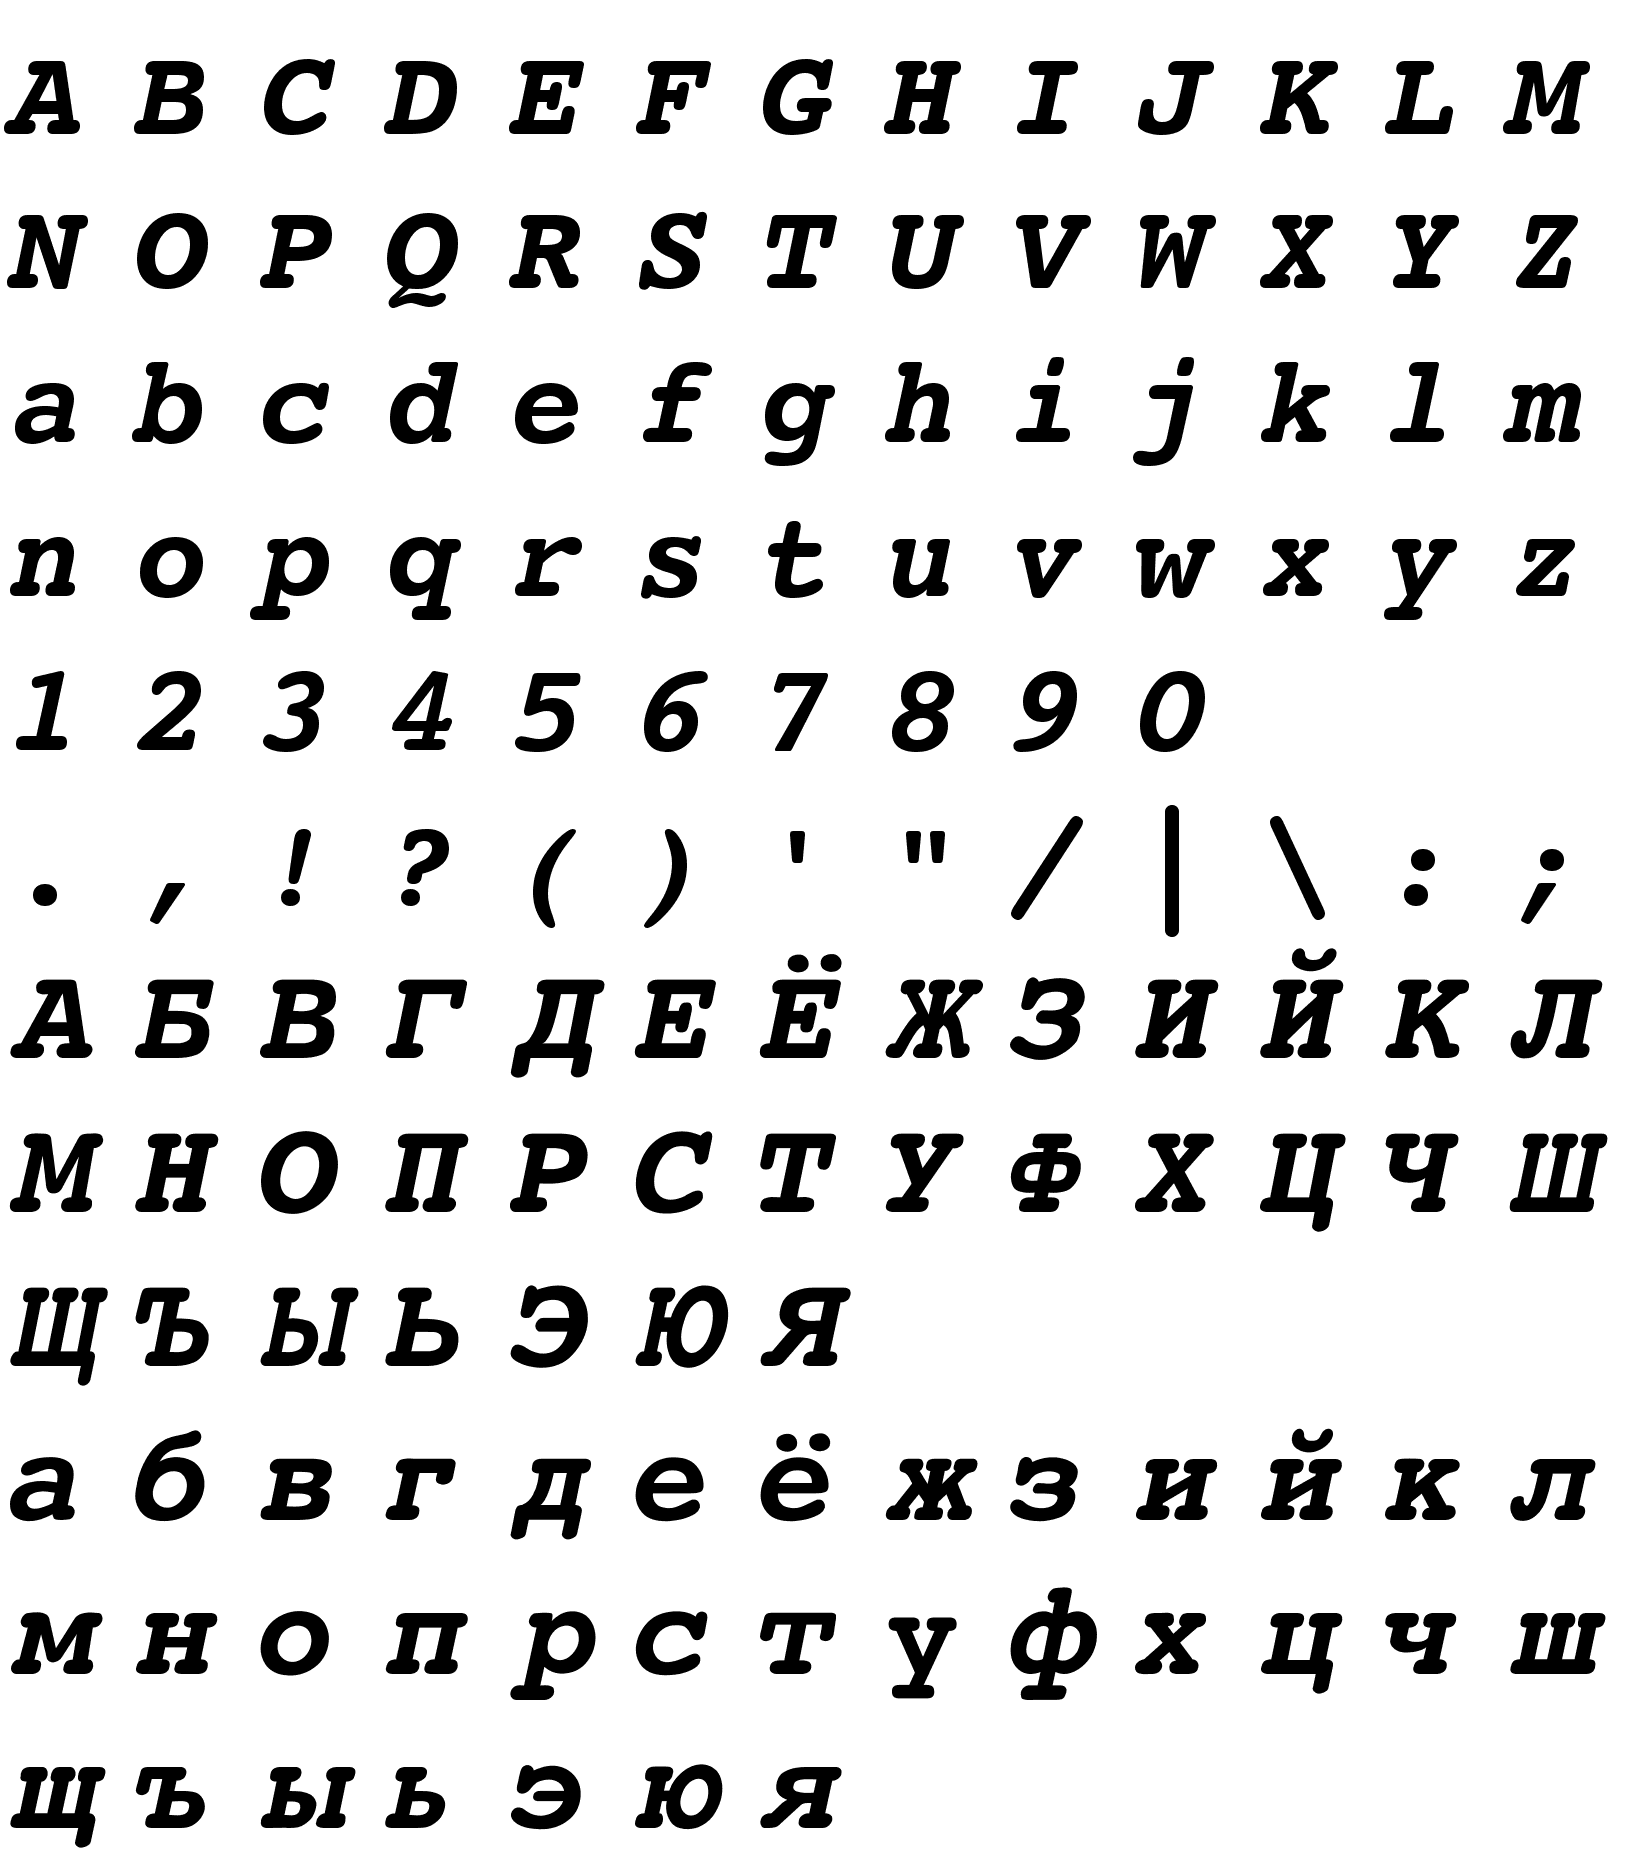 Шрифт Courier10 BT [Rus by me] Bold Italic